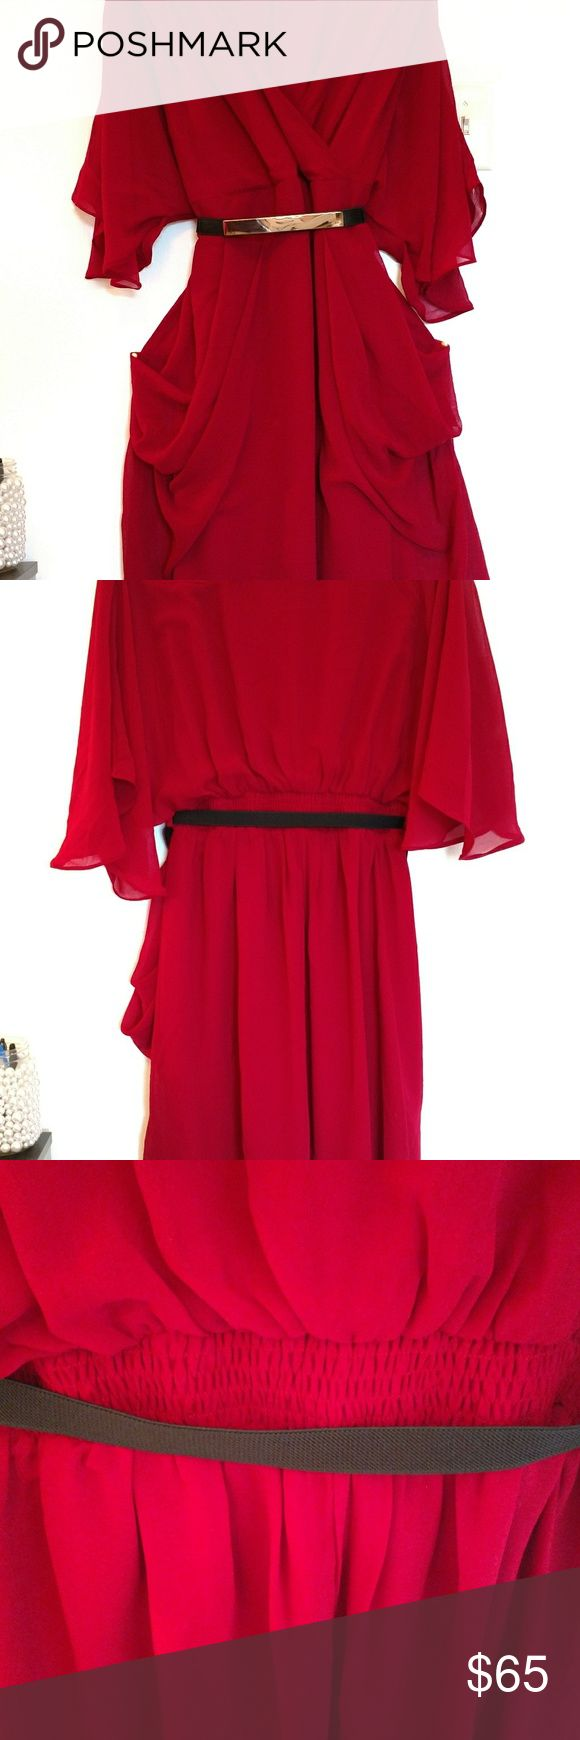 City Chic Red Dress The color is a deep cranberry with gold plate detail on the belt. This dress looks great on someone with curvy hips! Very sexy for date night, but not revealing. Ordered brand new from Nordstrom's. The dress comes to knee length and bust is covered. Also, it's fully lined so no panty lines visible. City Chic Dresses Midi